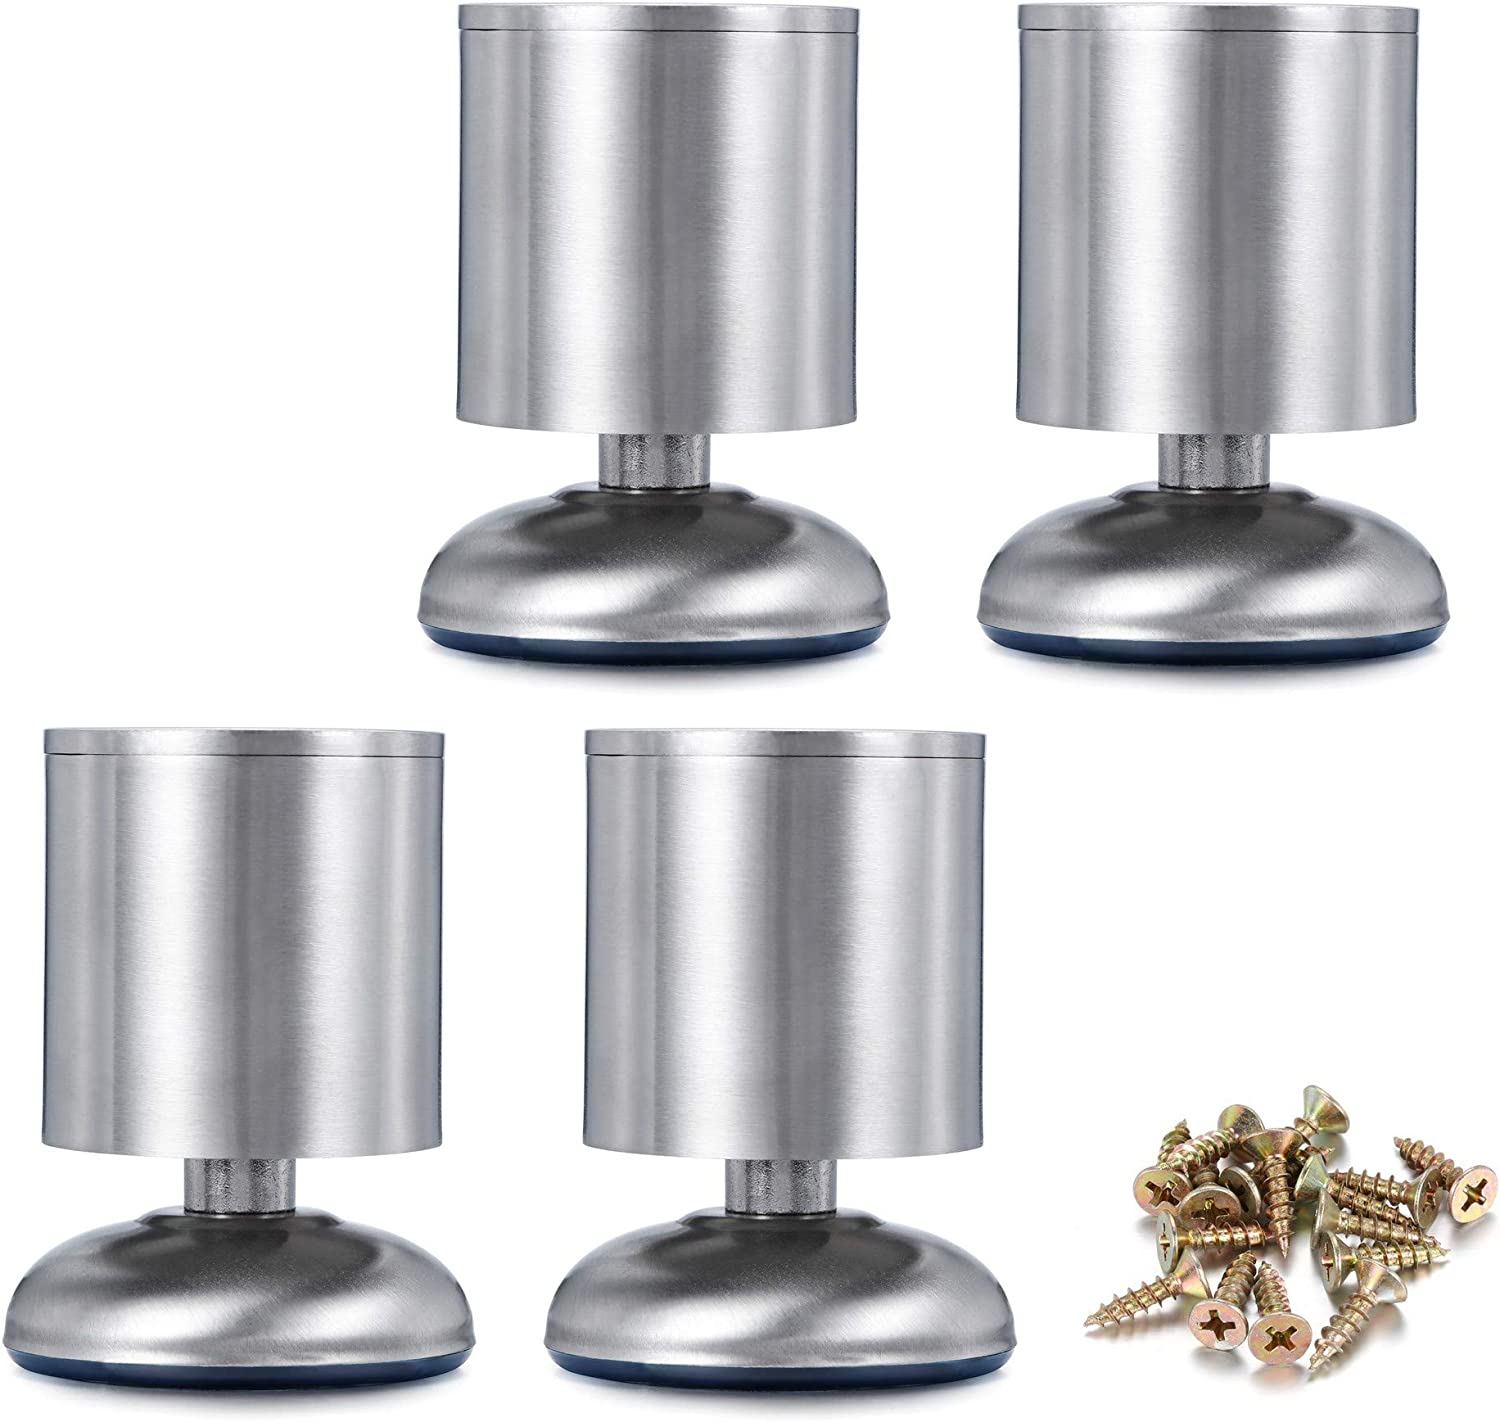 CozyCabin 4PCS Adjustable Metal Furniture Legs - Stainless Steel Cabinet Legs Round for Cabinet Sofa Table Kitchen Feet Replacement,(Height 80mm/3